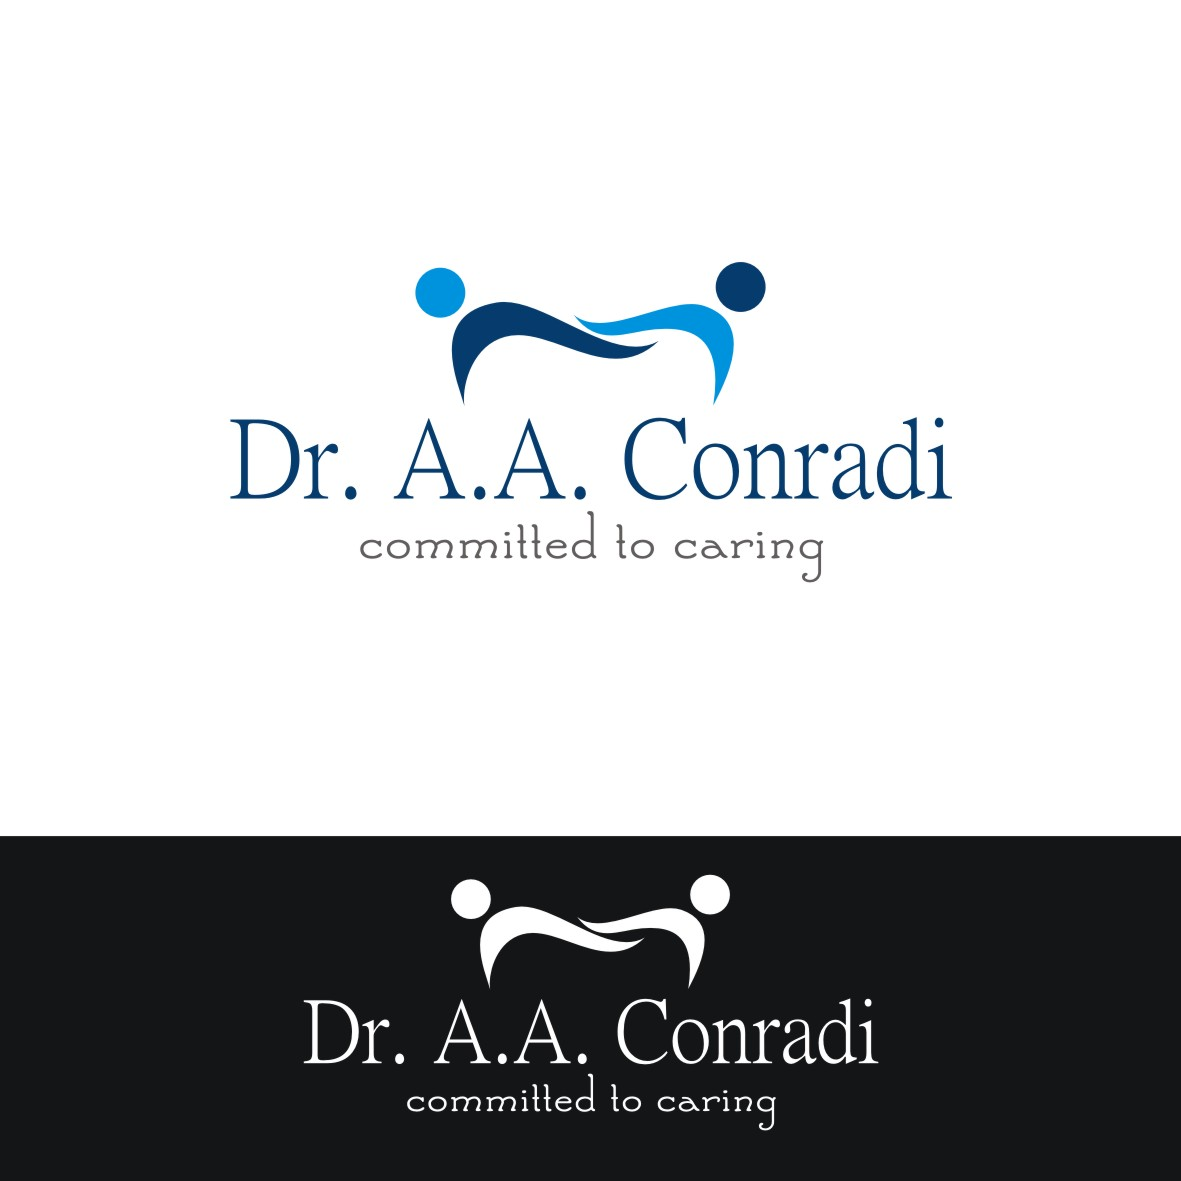 Logo Design by arteo_design - Entry No. 39 in the Logo Design Contest Unique Logo Design Wanted for Dr. A.A. Conradi.